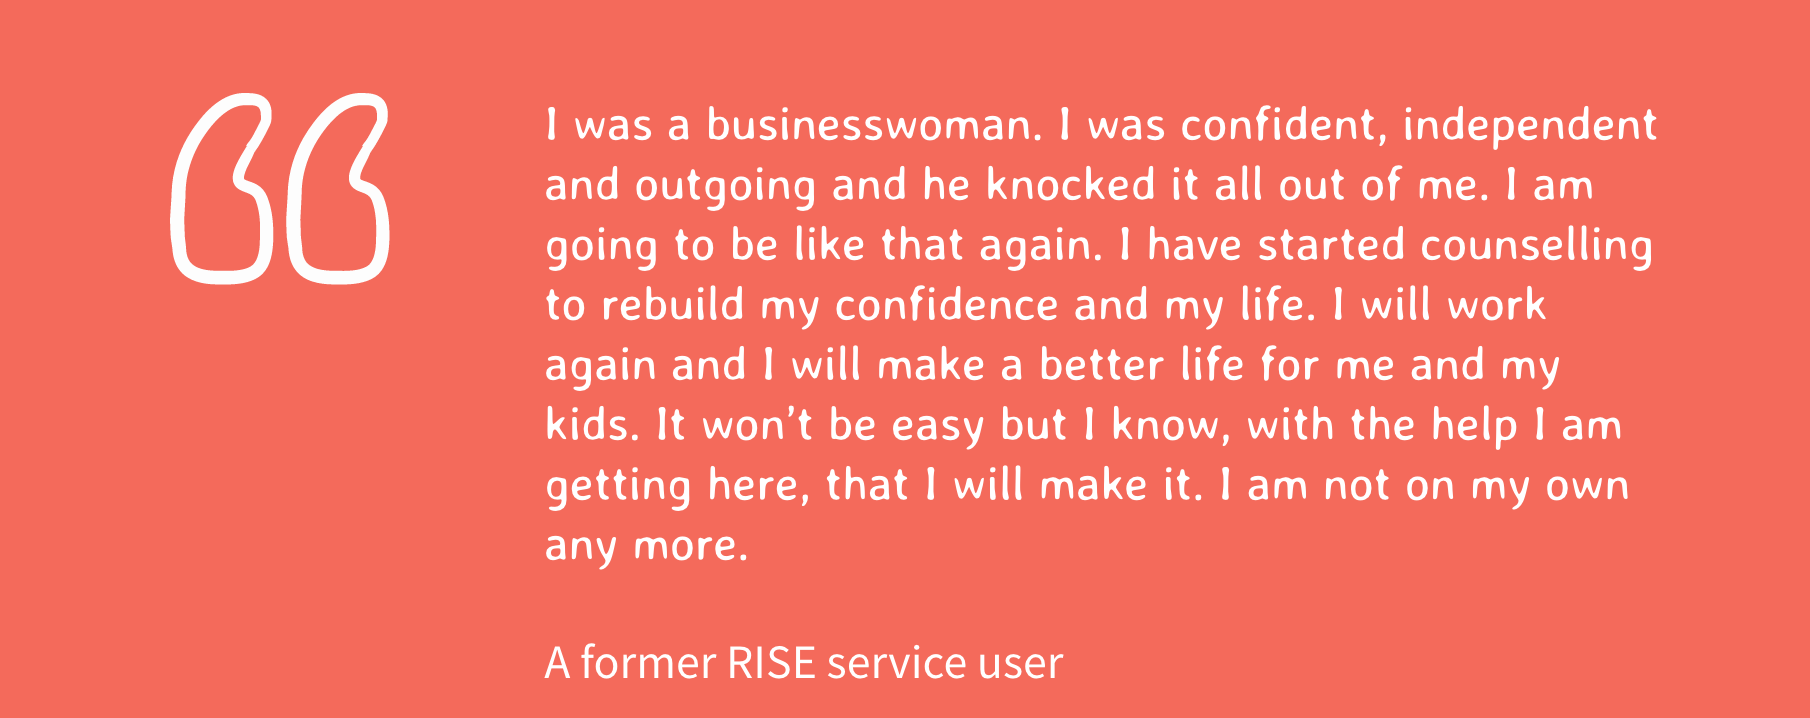 testimonial from someone using RISE's domestic abuse help